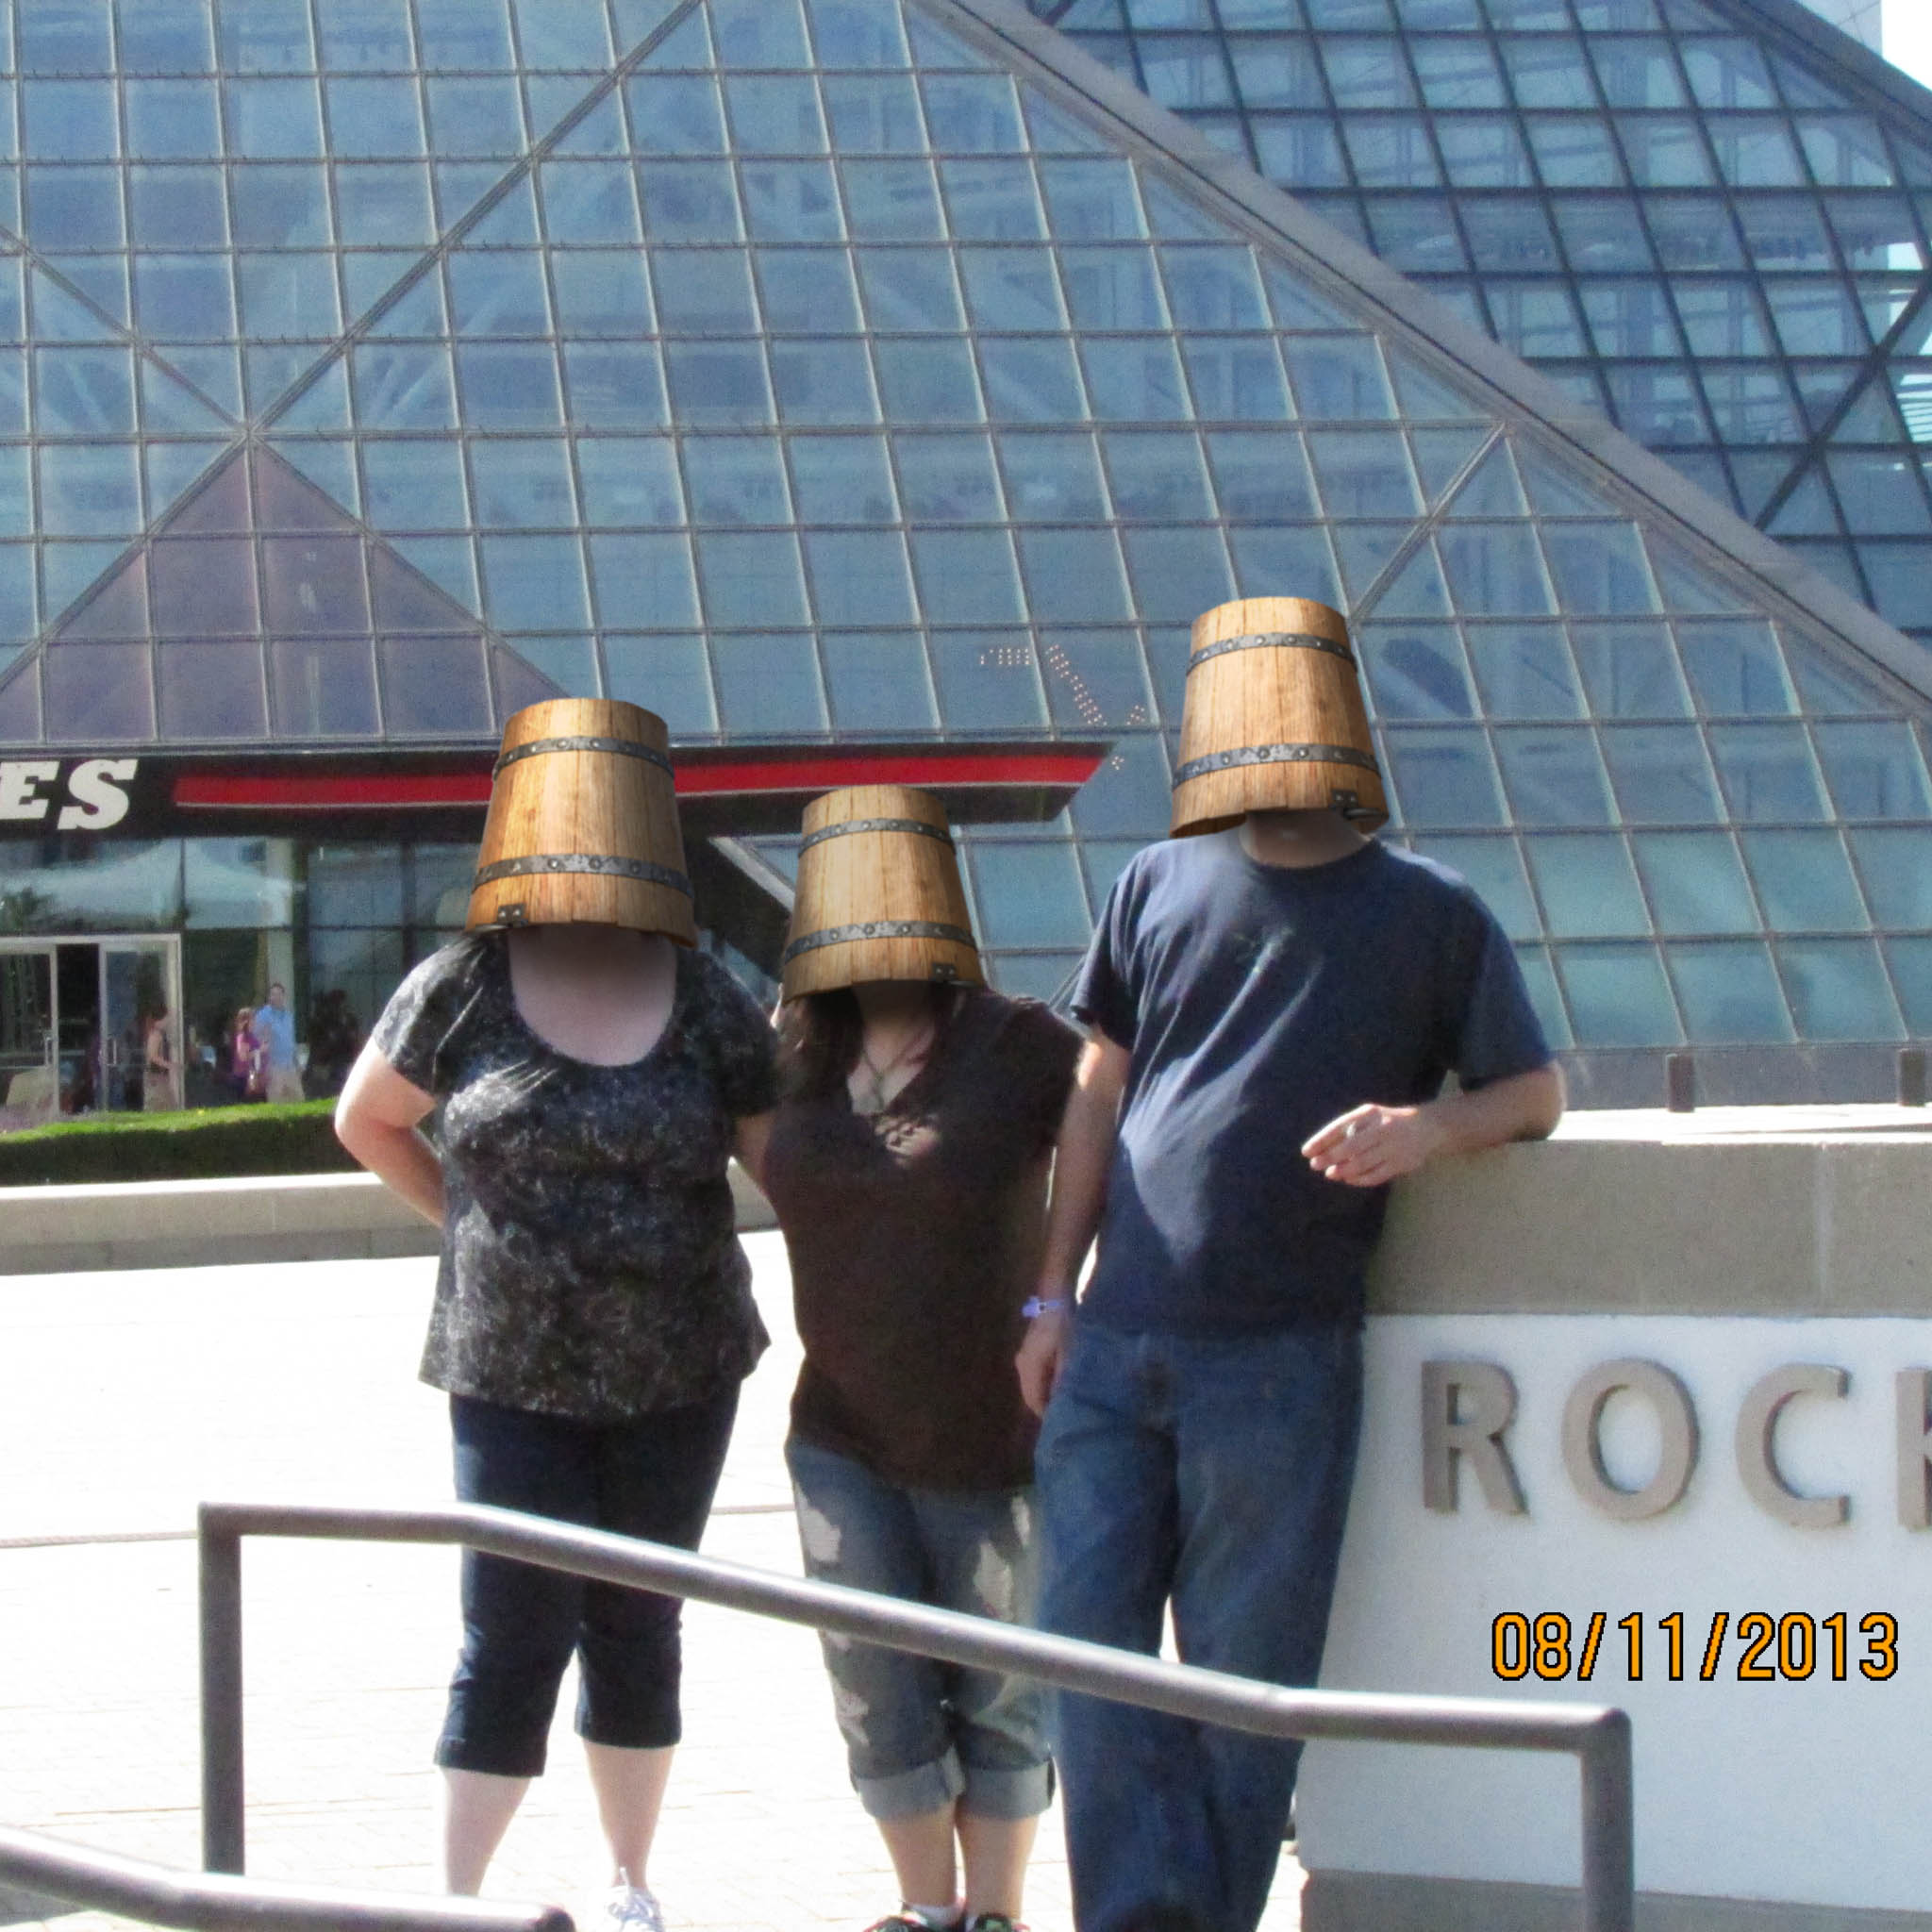 bucket_heads_squarecrop